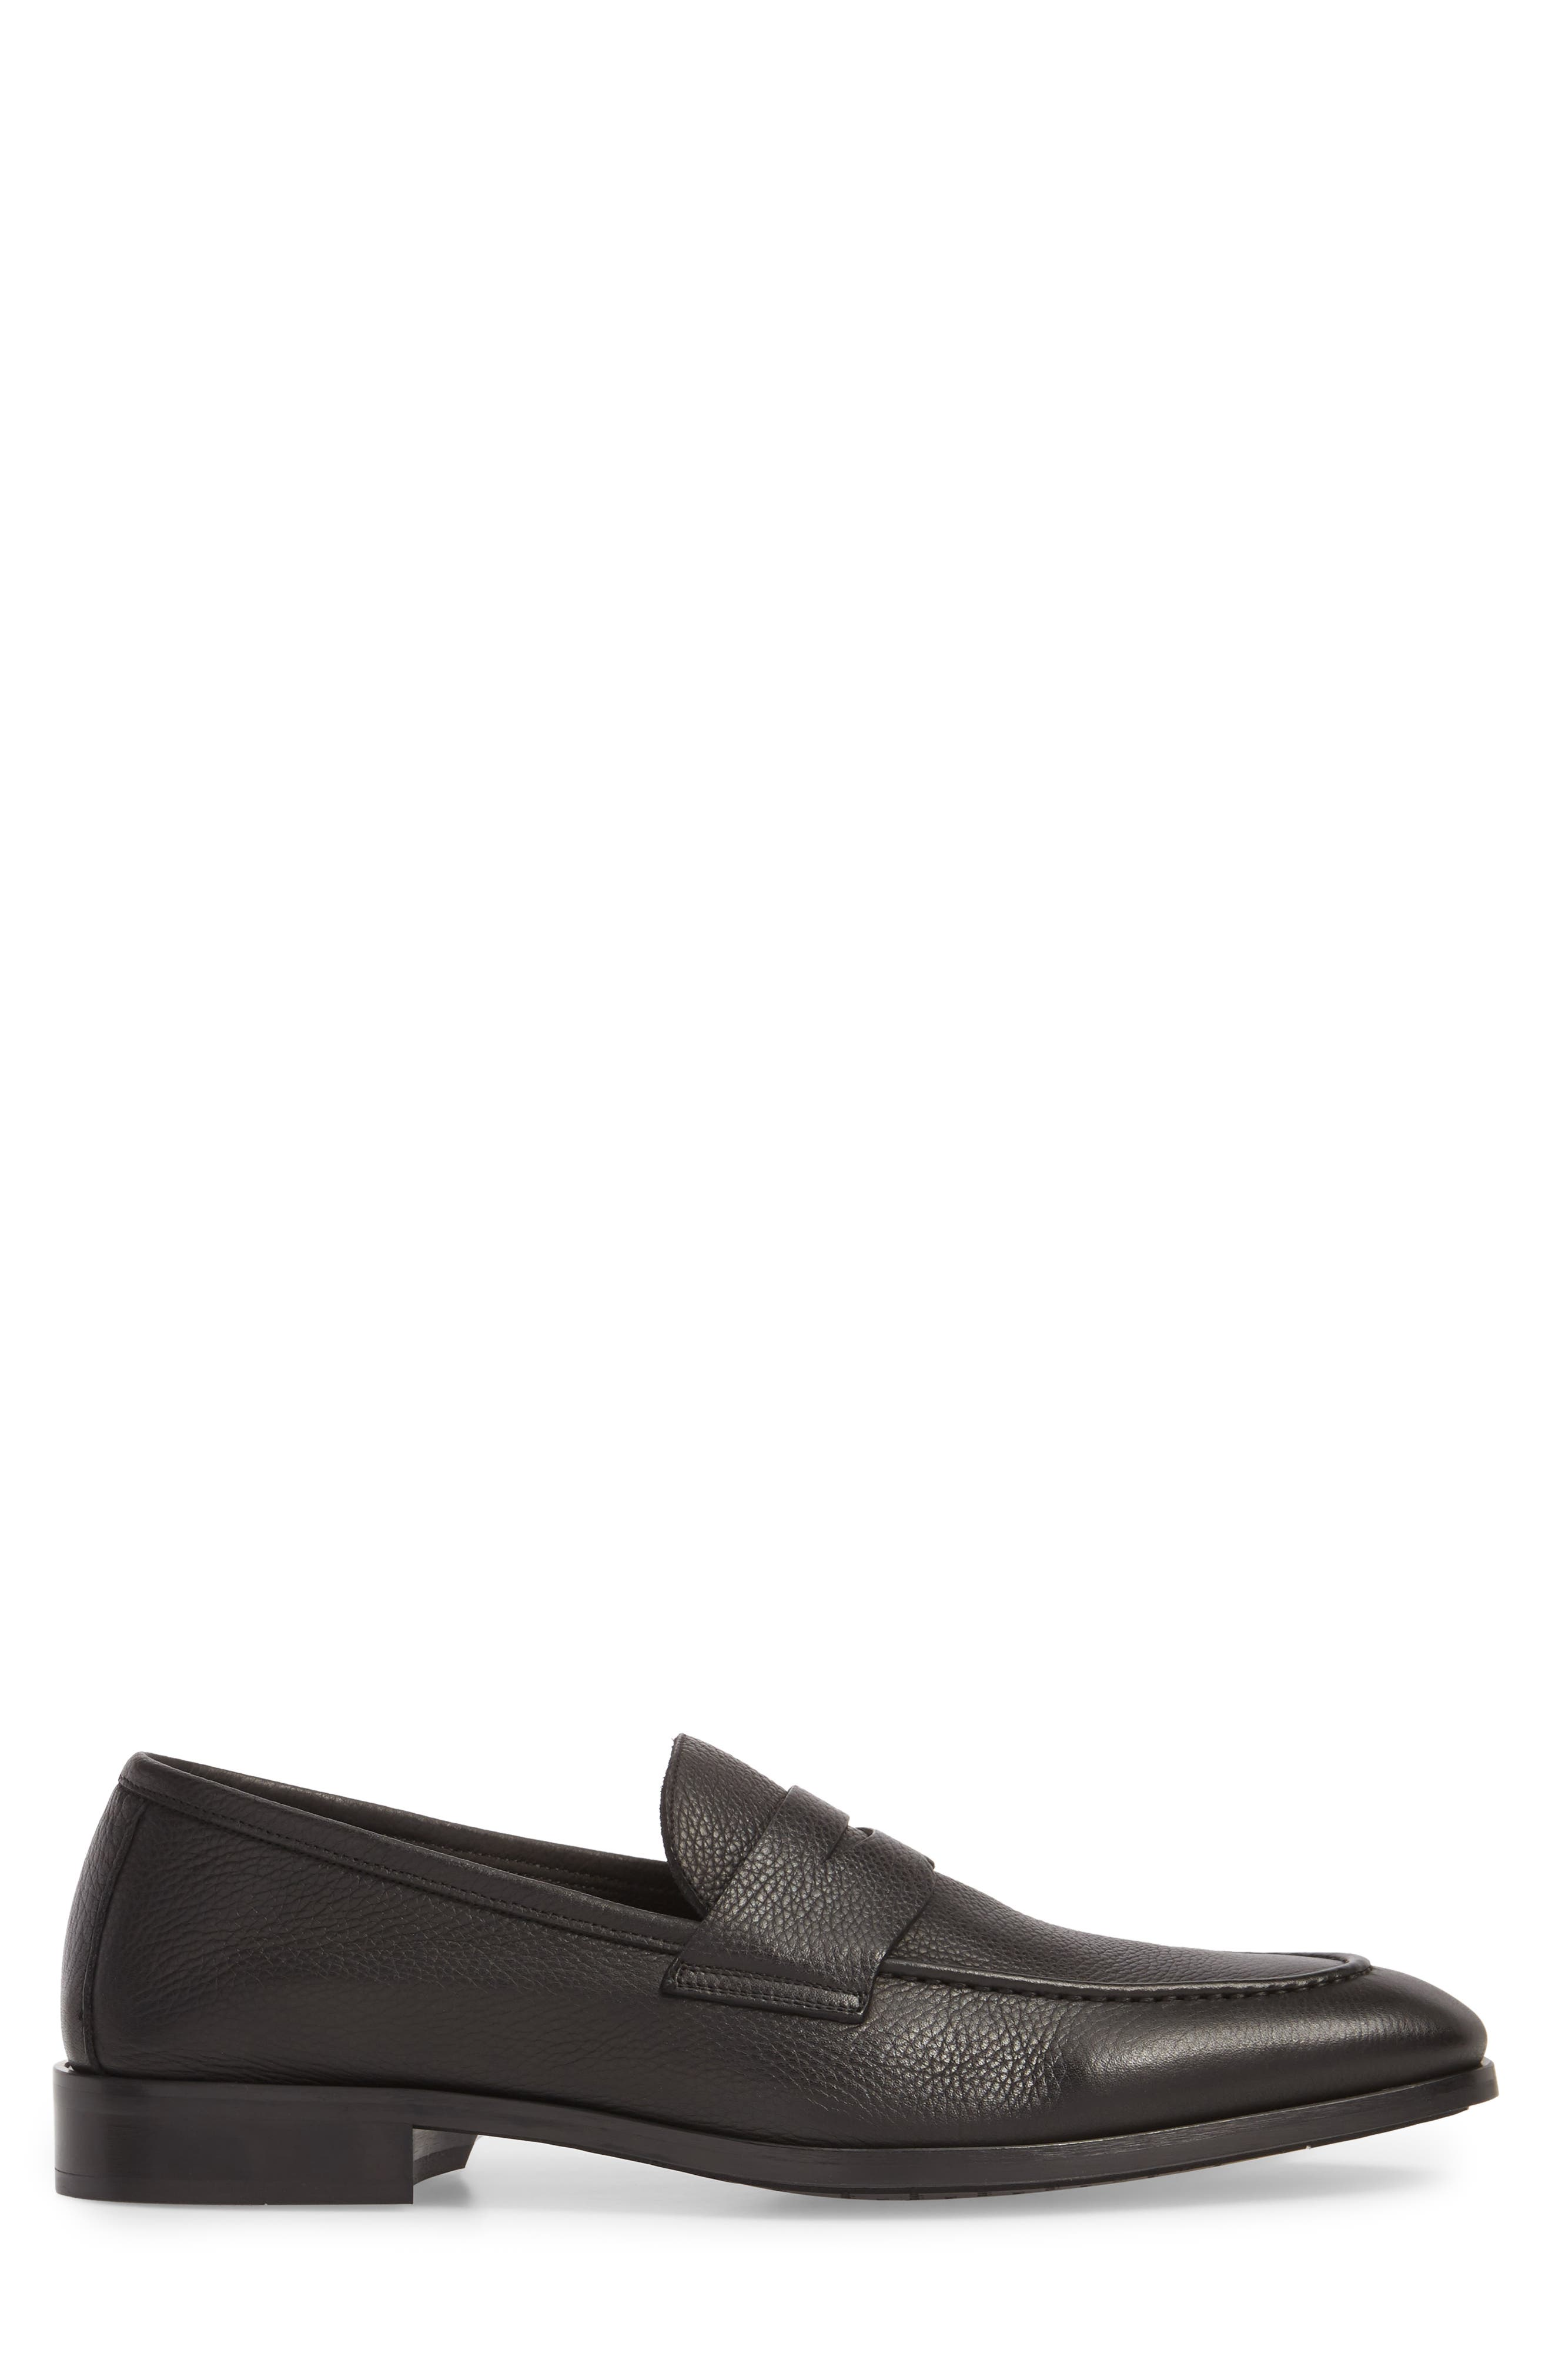 TO BOOT NEW YORK,                             Johnson Penny Loafer,                             Alternate thumbnail 3, color,                             BLACK PEBBLED LEATHER